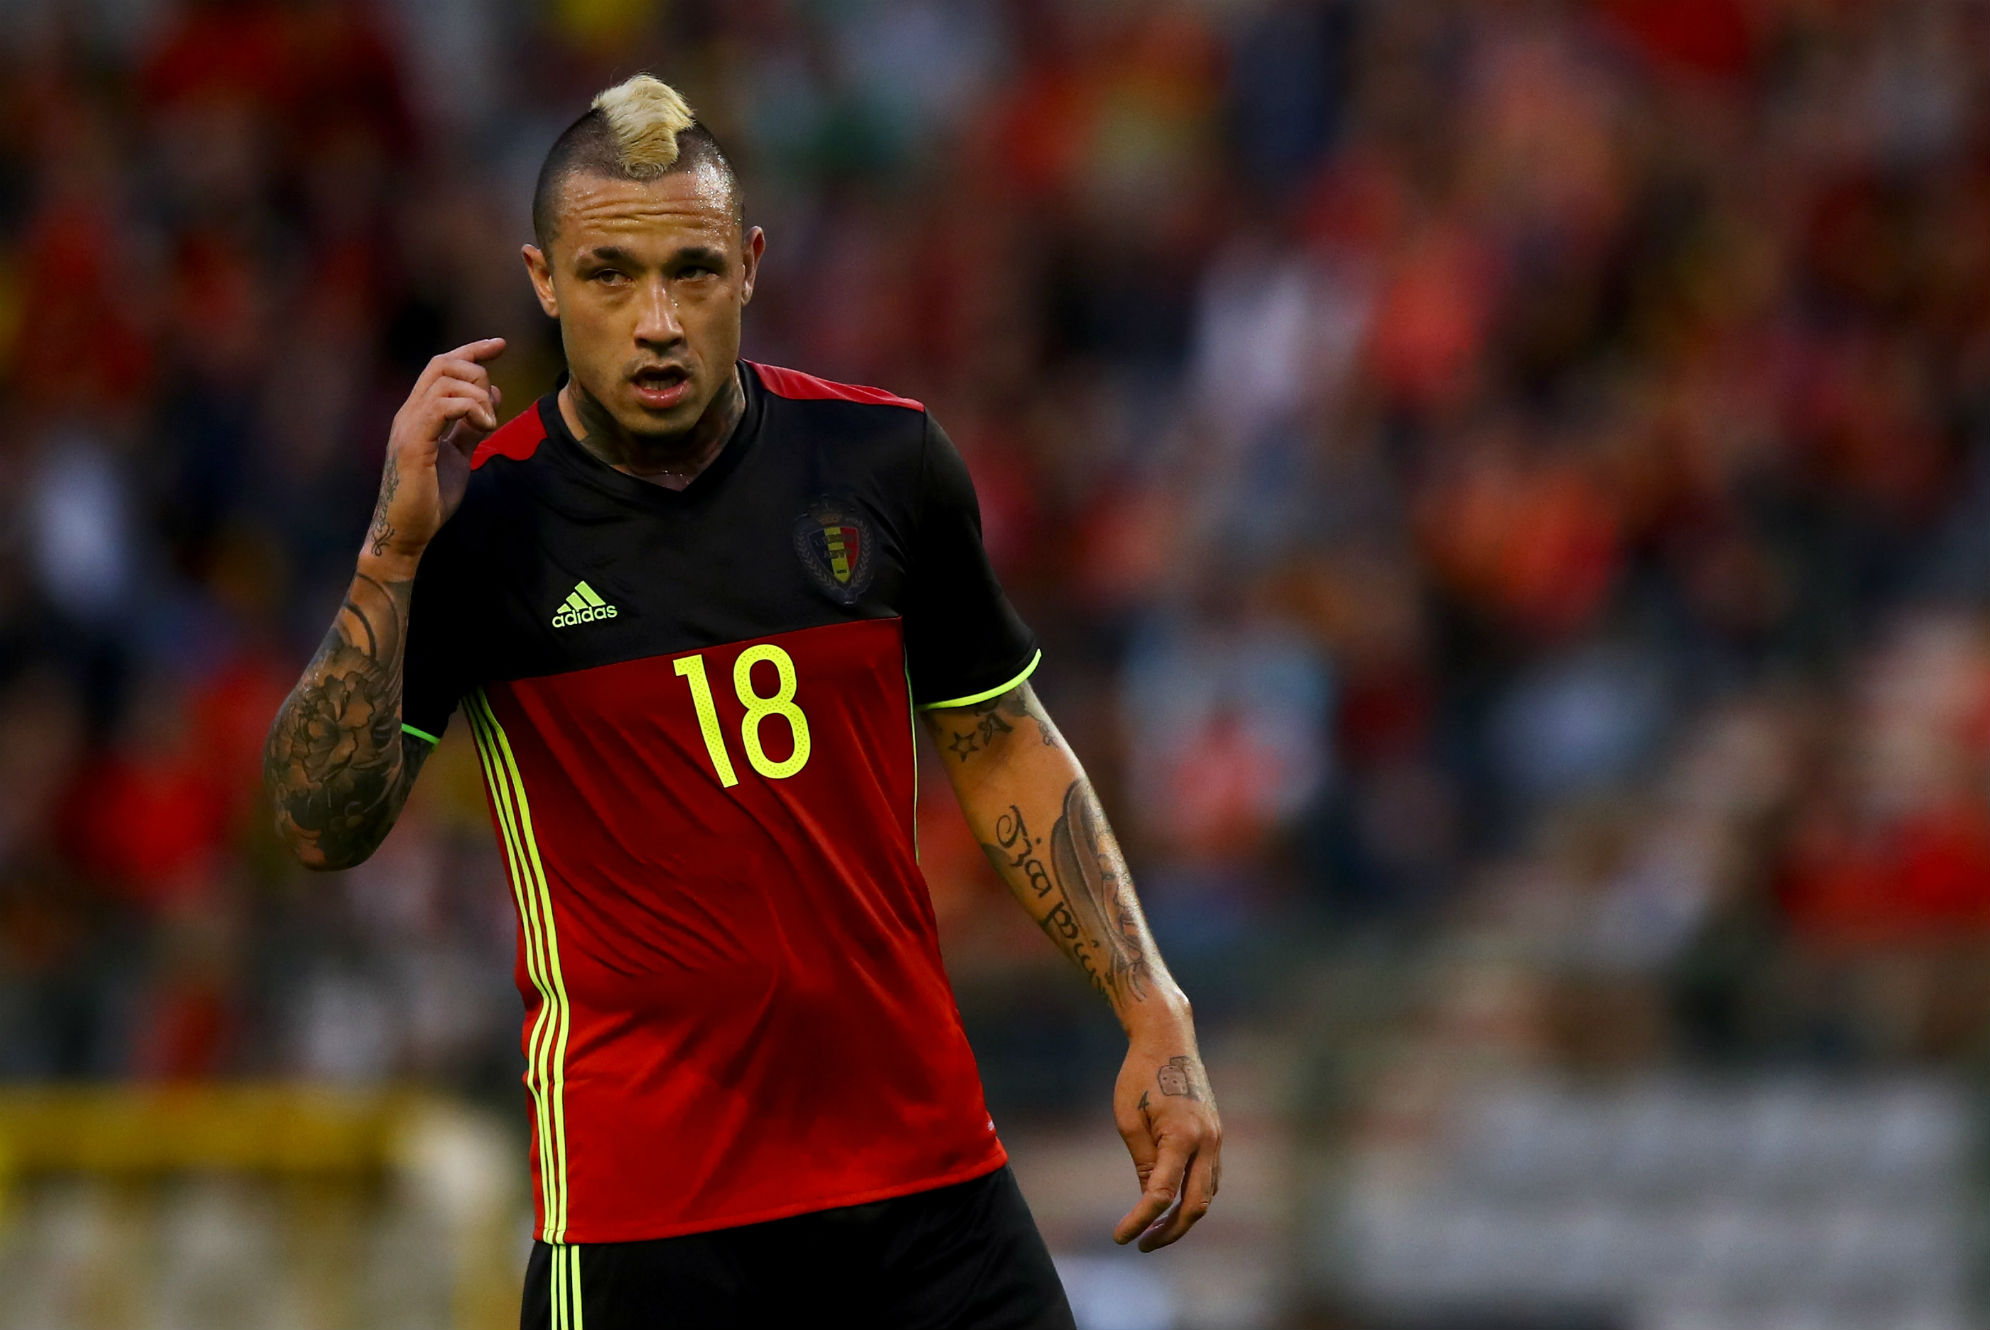 Petulant Nainggolan has no one to blame but himself for Belgium